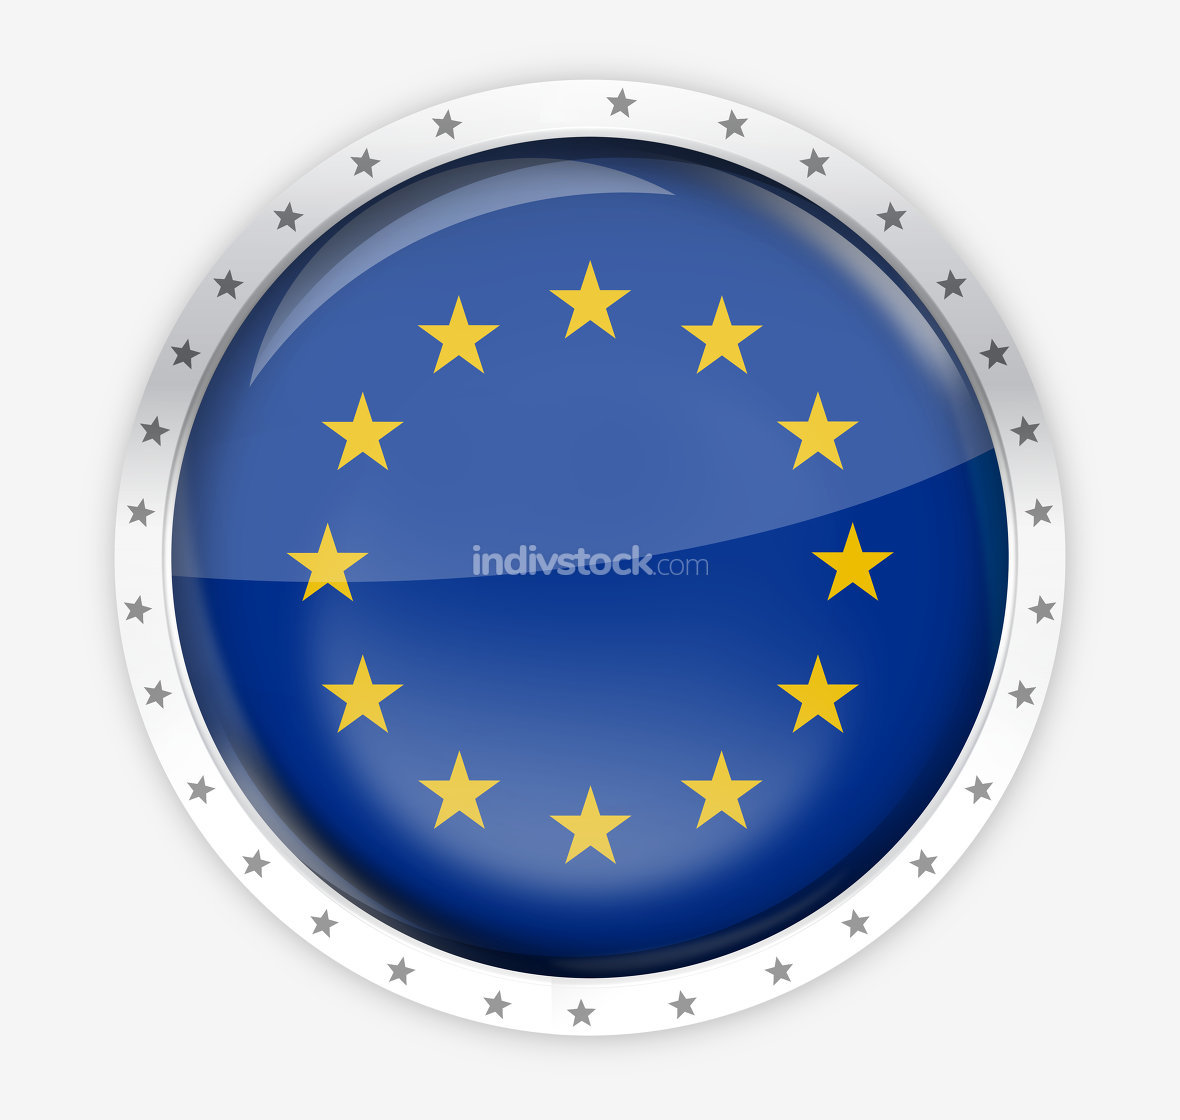 Europe round opacity button icon 3d render graphic isolated